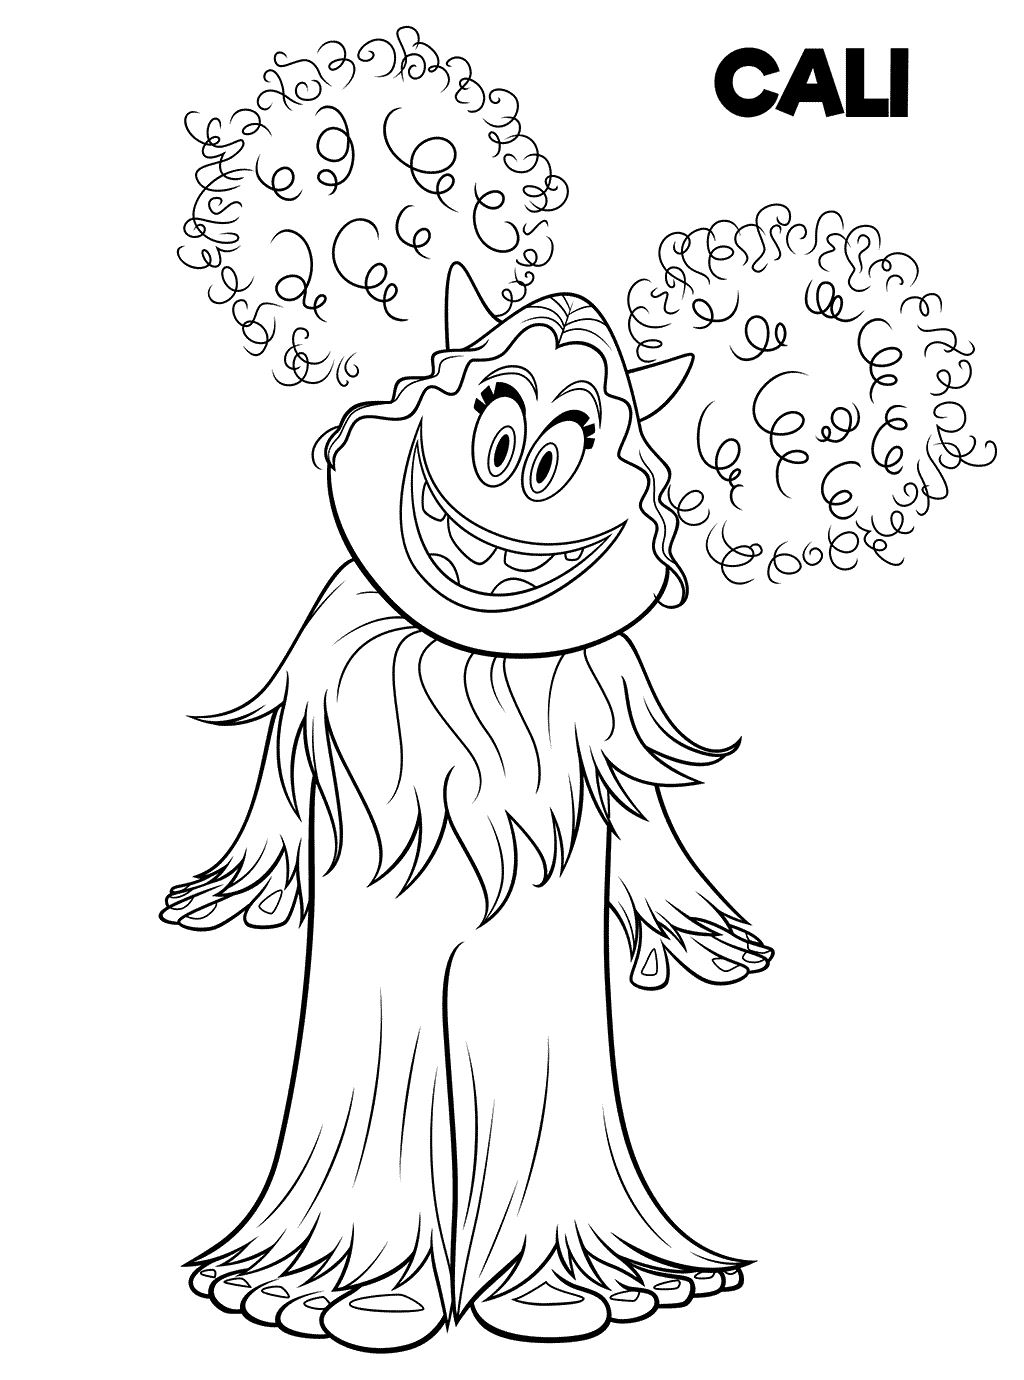 Movie Coloring Pages Free Coloring Pages Printable For